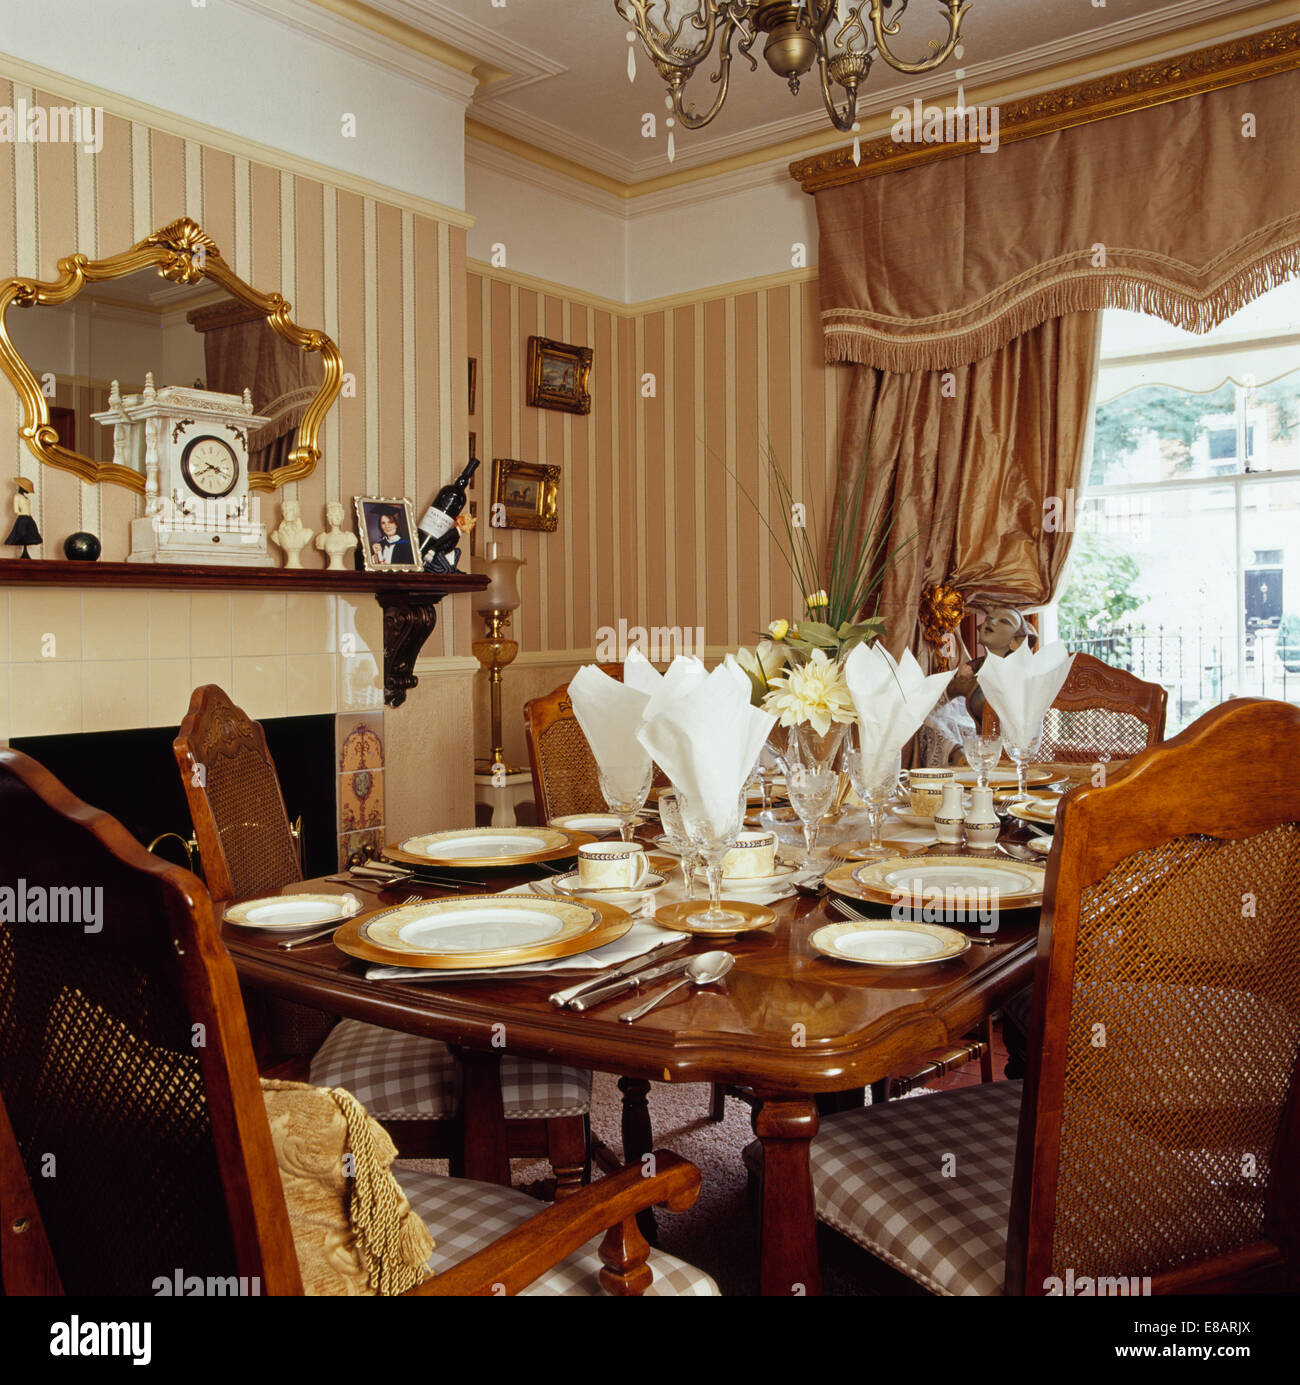 Antique Mahogany Table Set For Lunch In Dining Room With Striped Wallpaper  And Heavy Beige Silk Curtains